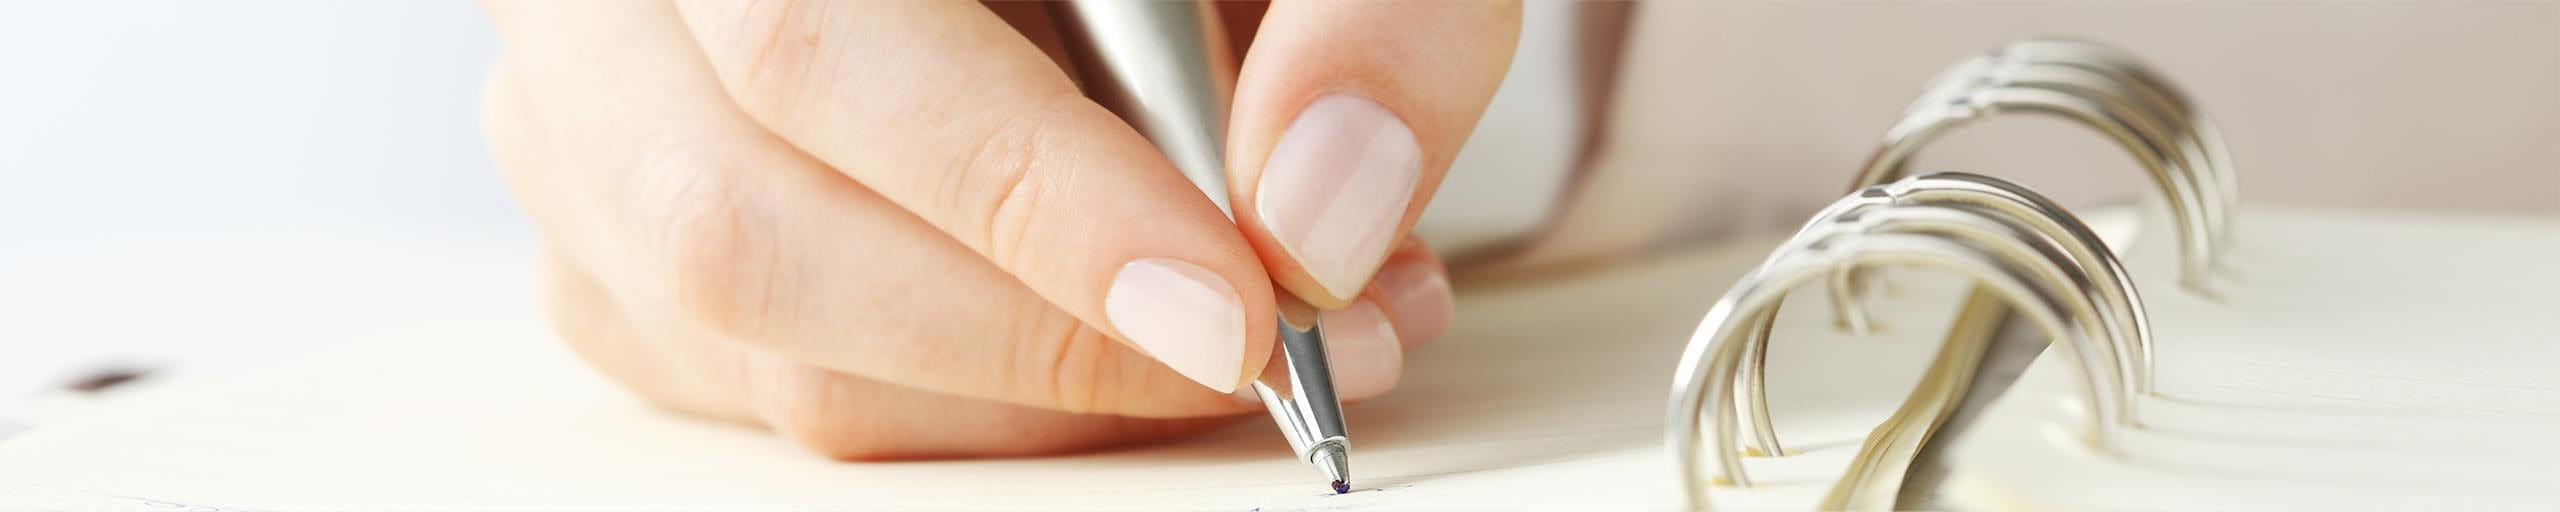 A woman's hand writes something in her agenda.